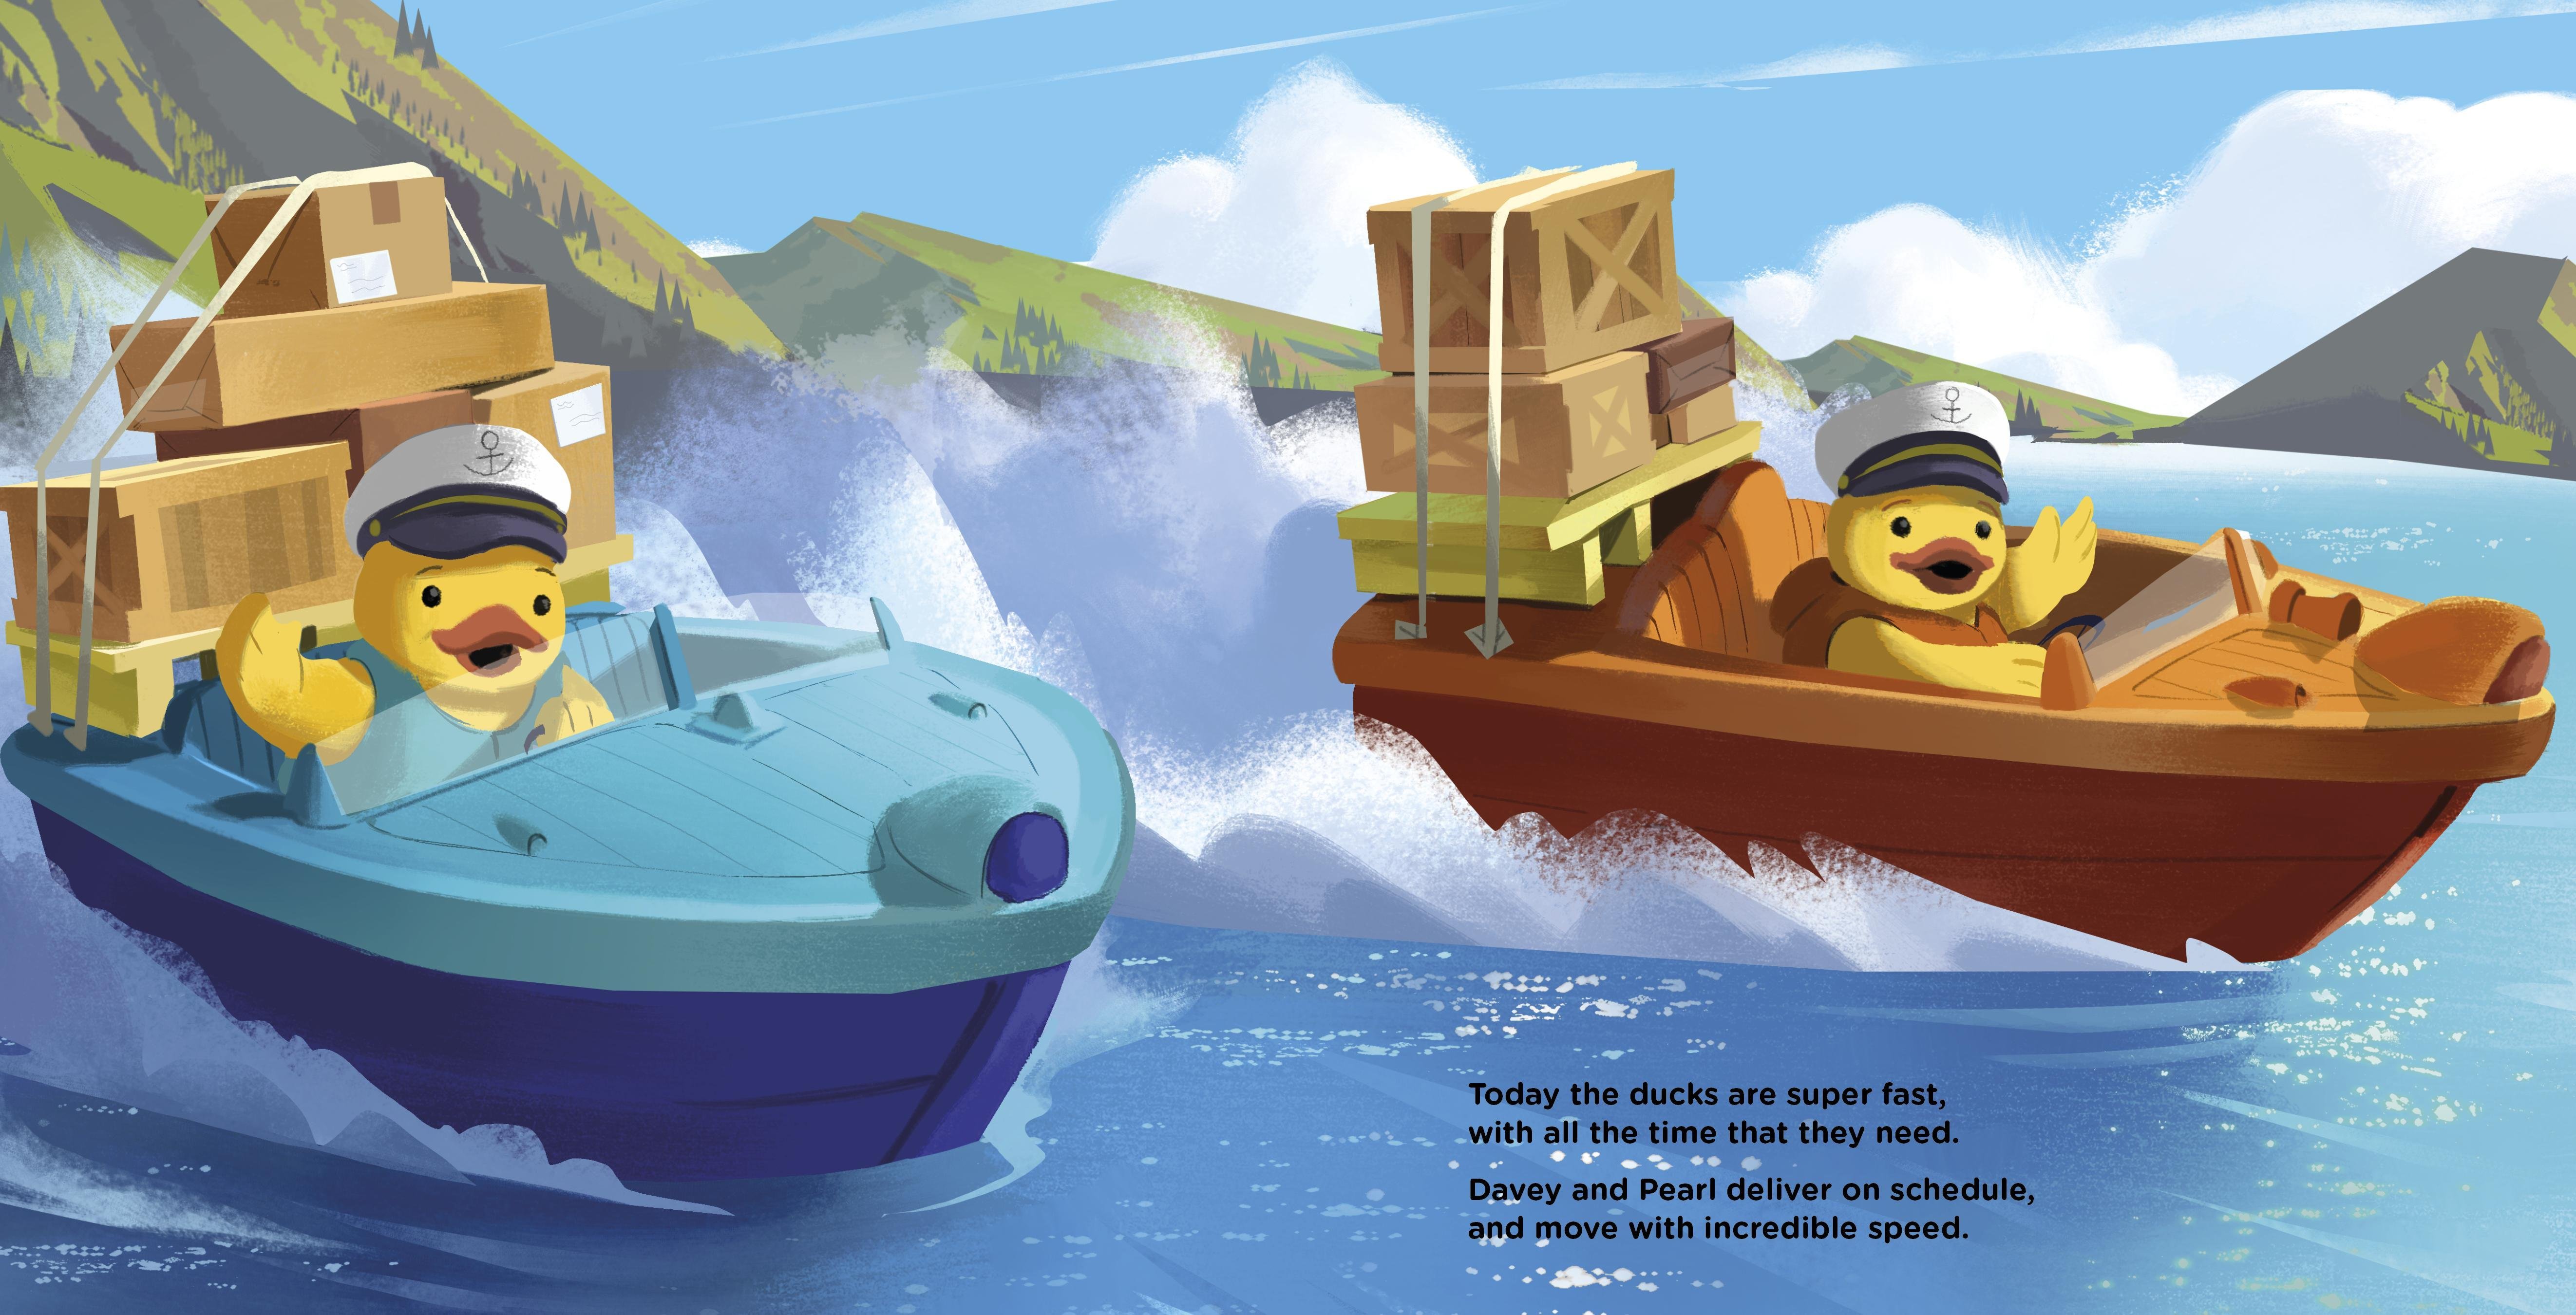 Green-toys-speed-boat-book-pg2.jpg